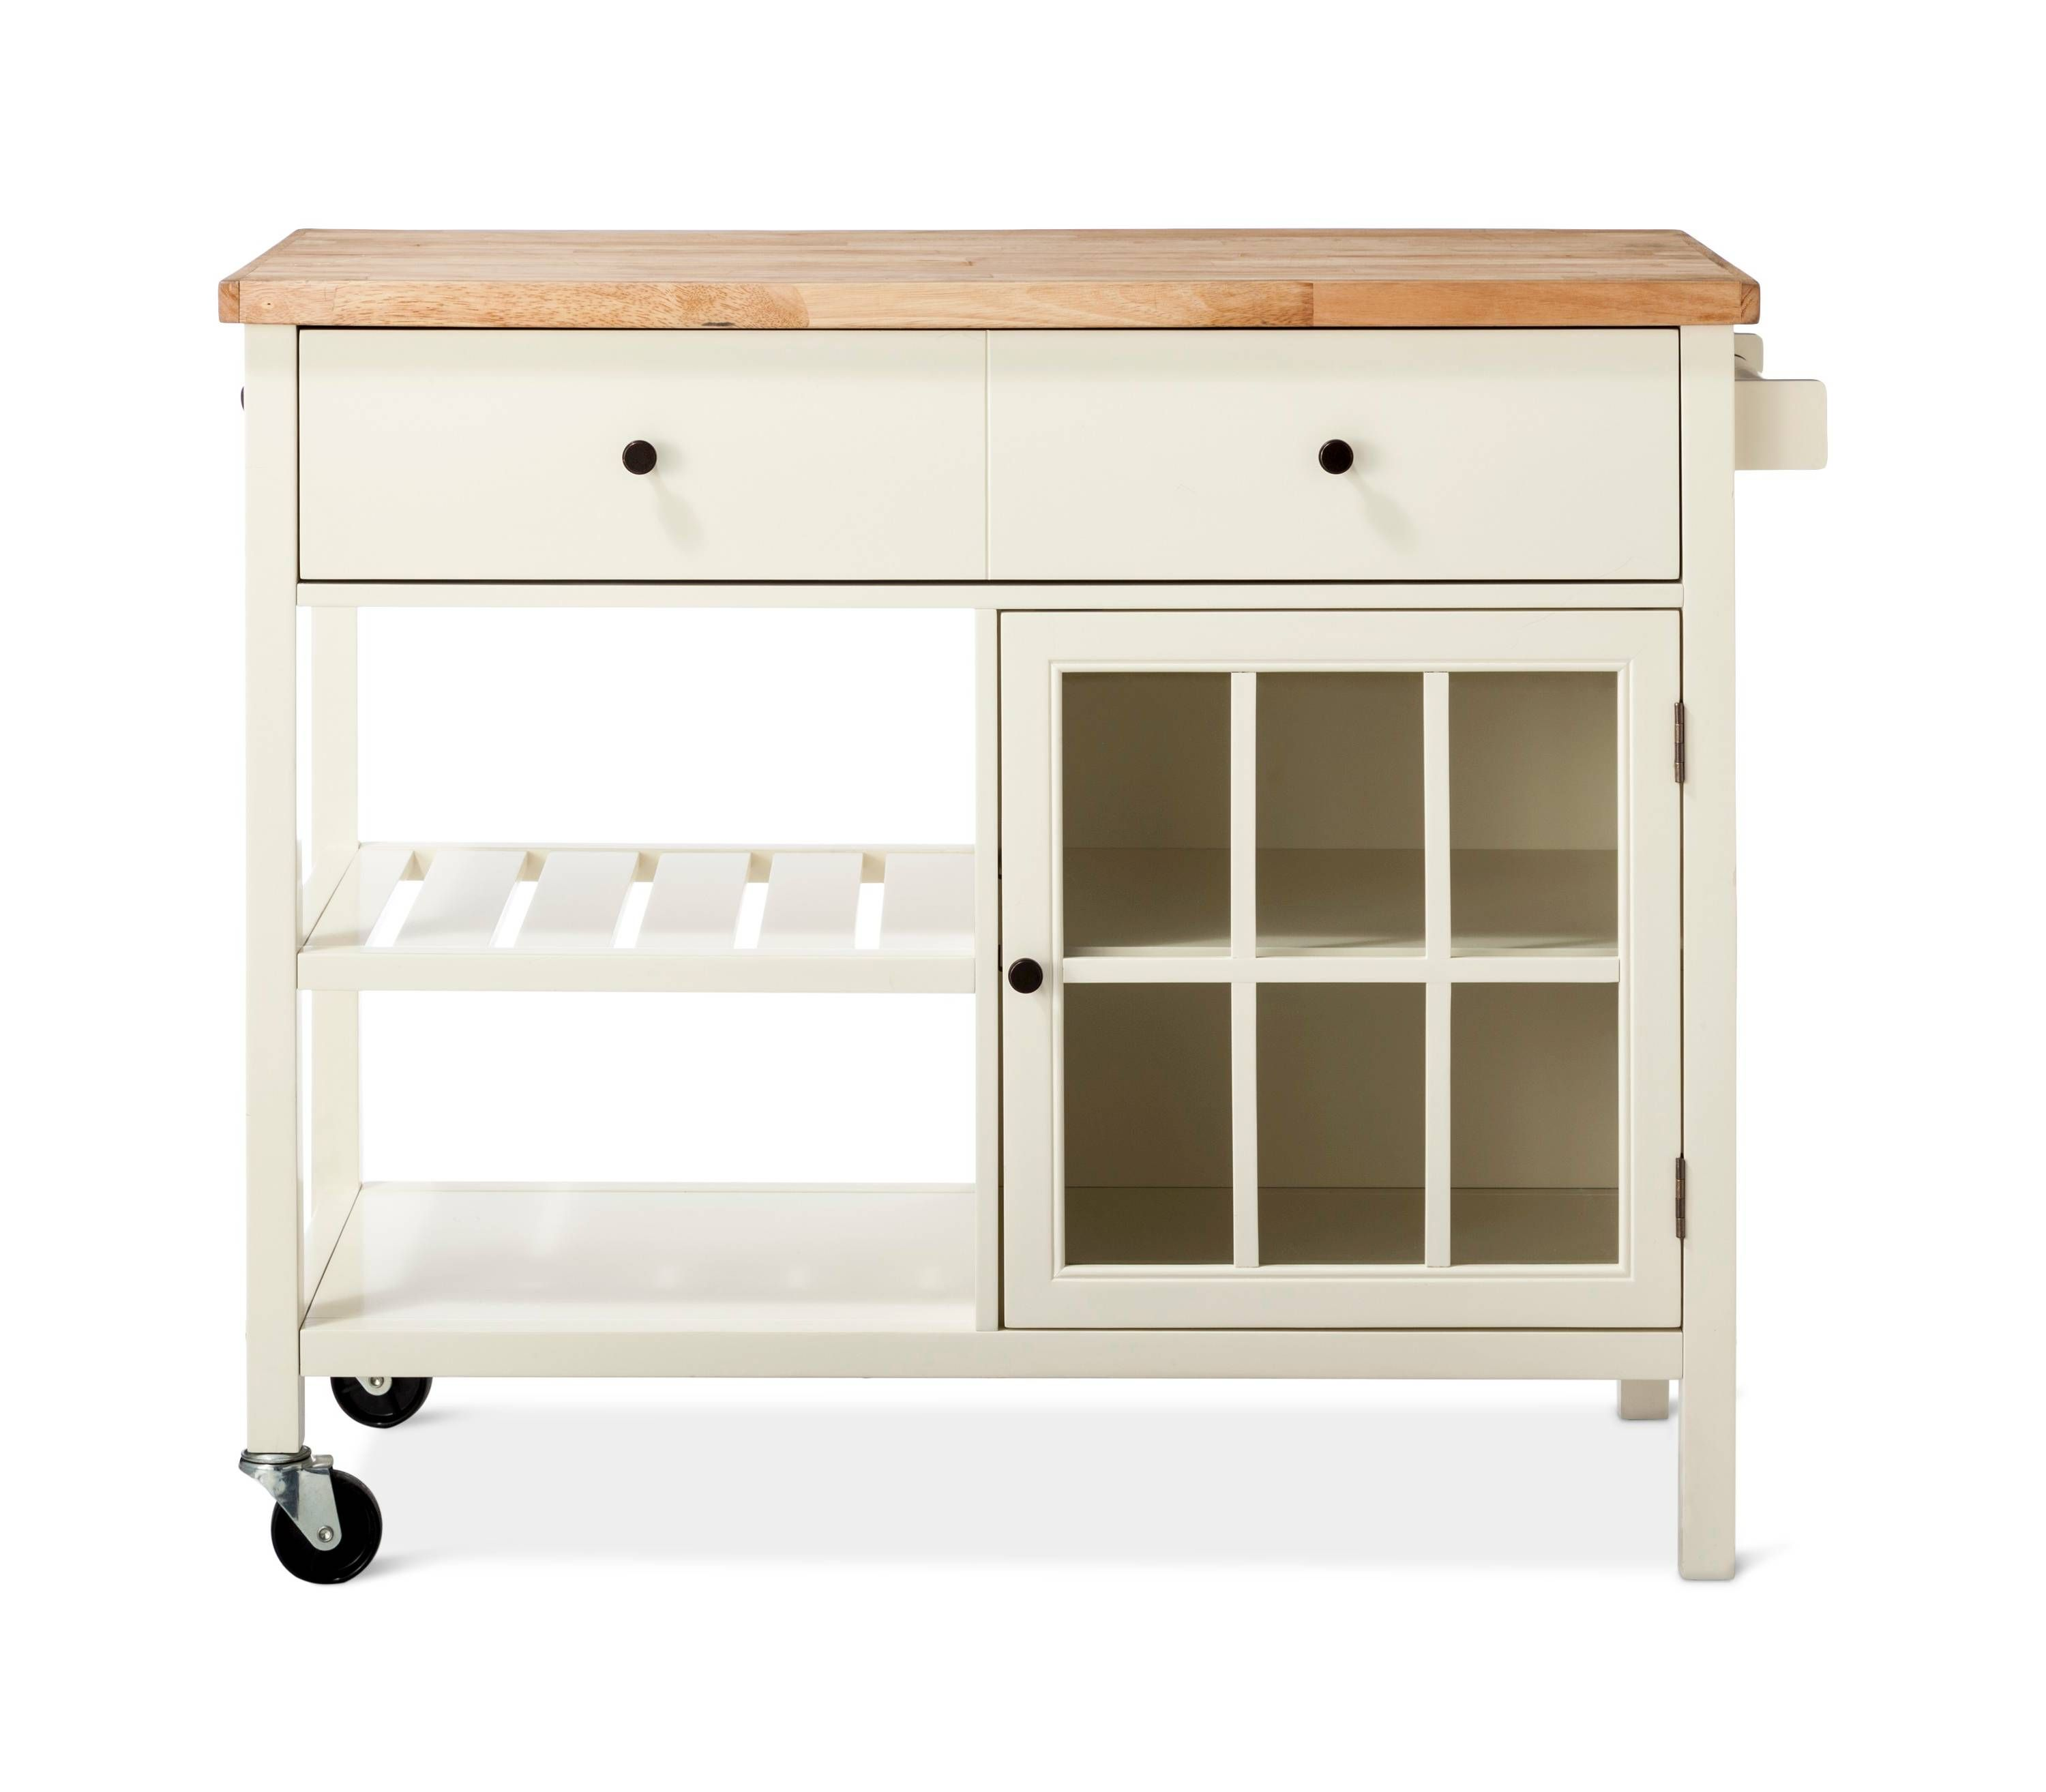 Threshold windham wood top kitchen island for a needed item to add to your kitchen or dining room